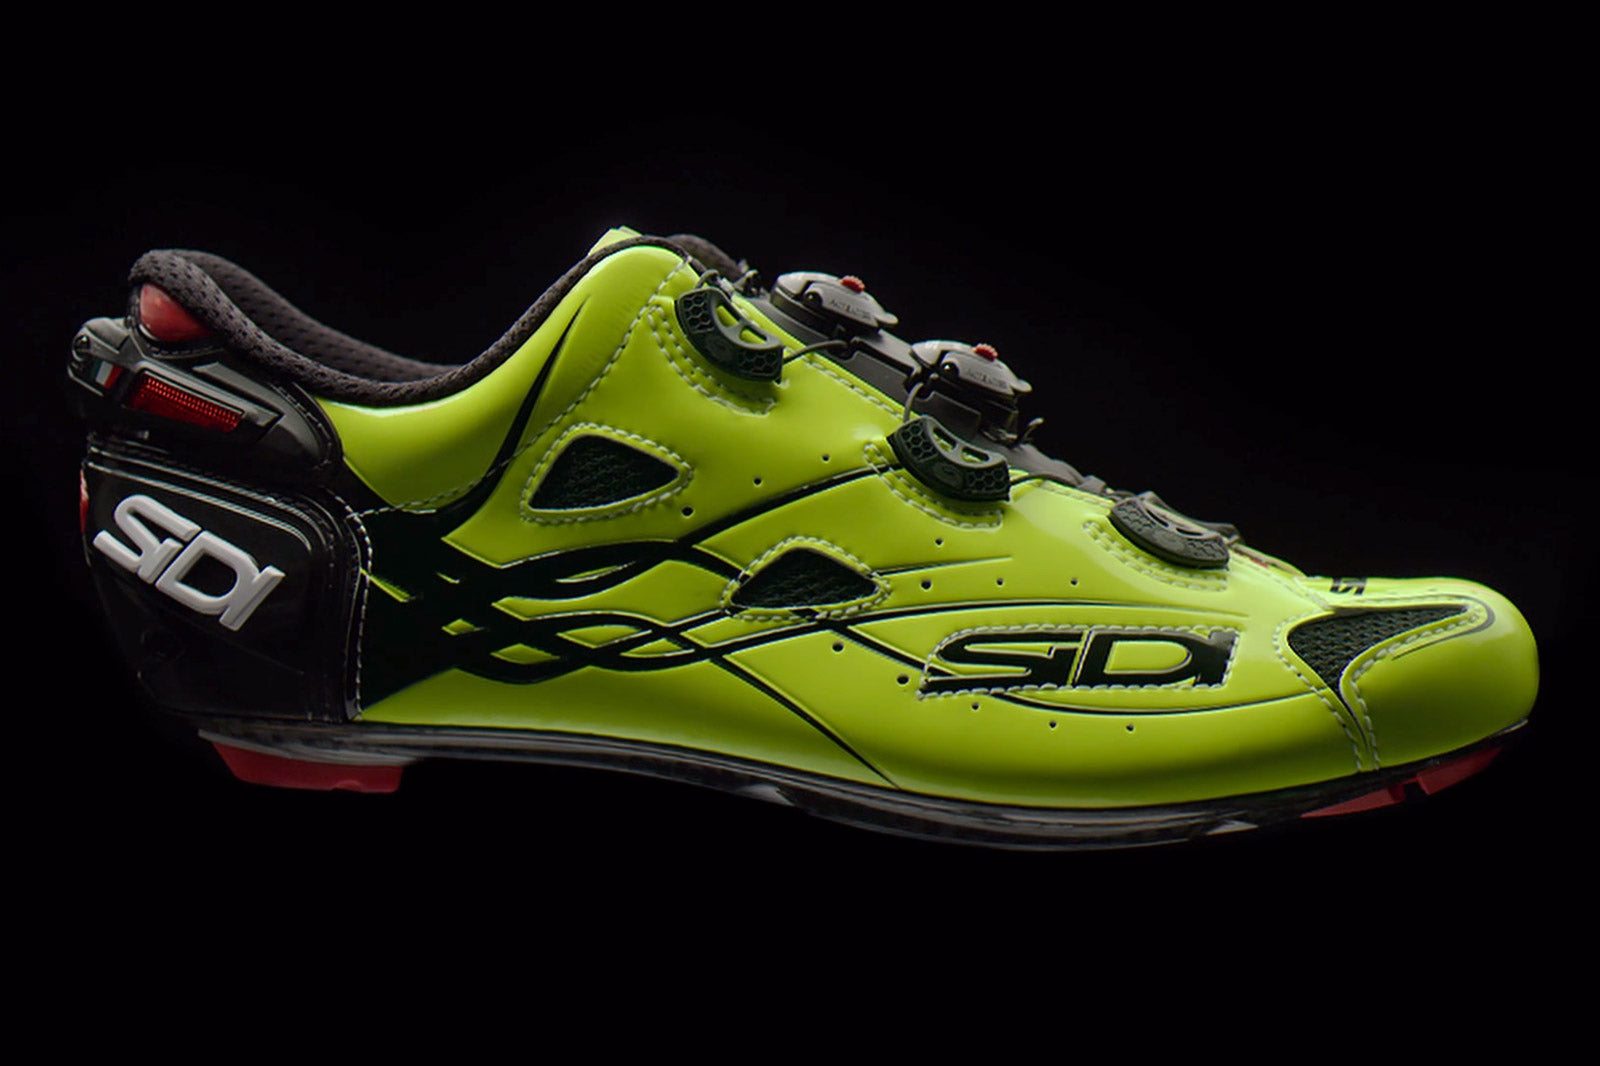 Sidi Shot Launched Ahead Of Tour de France